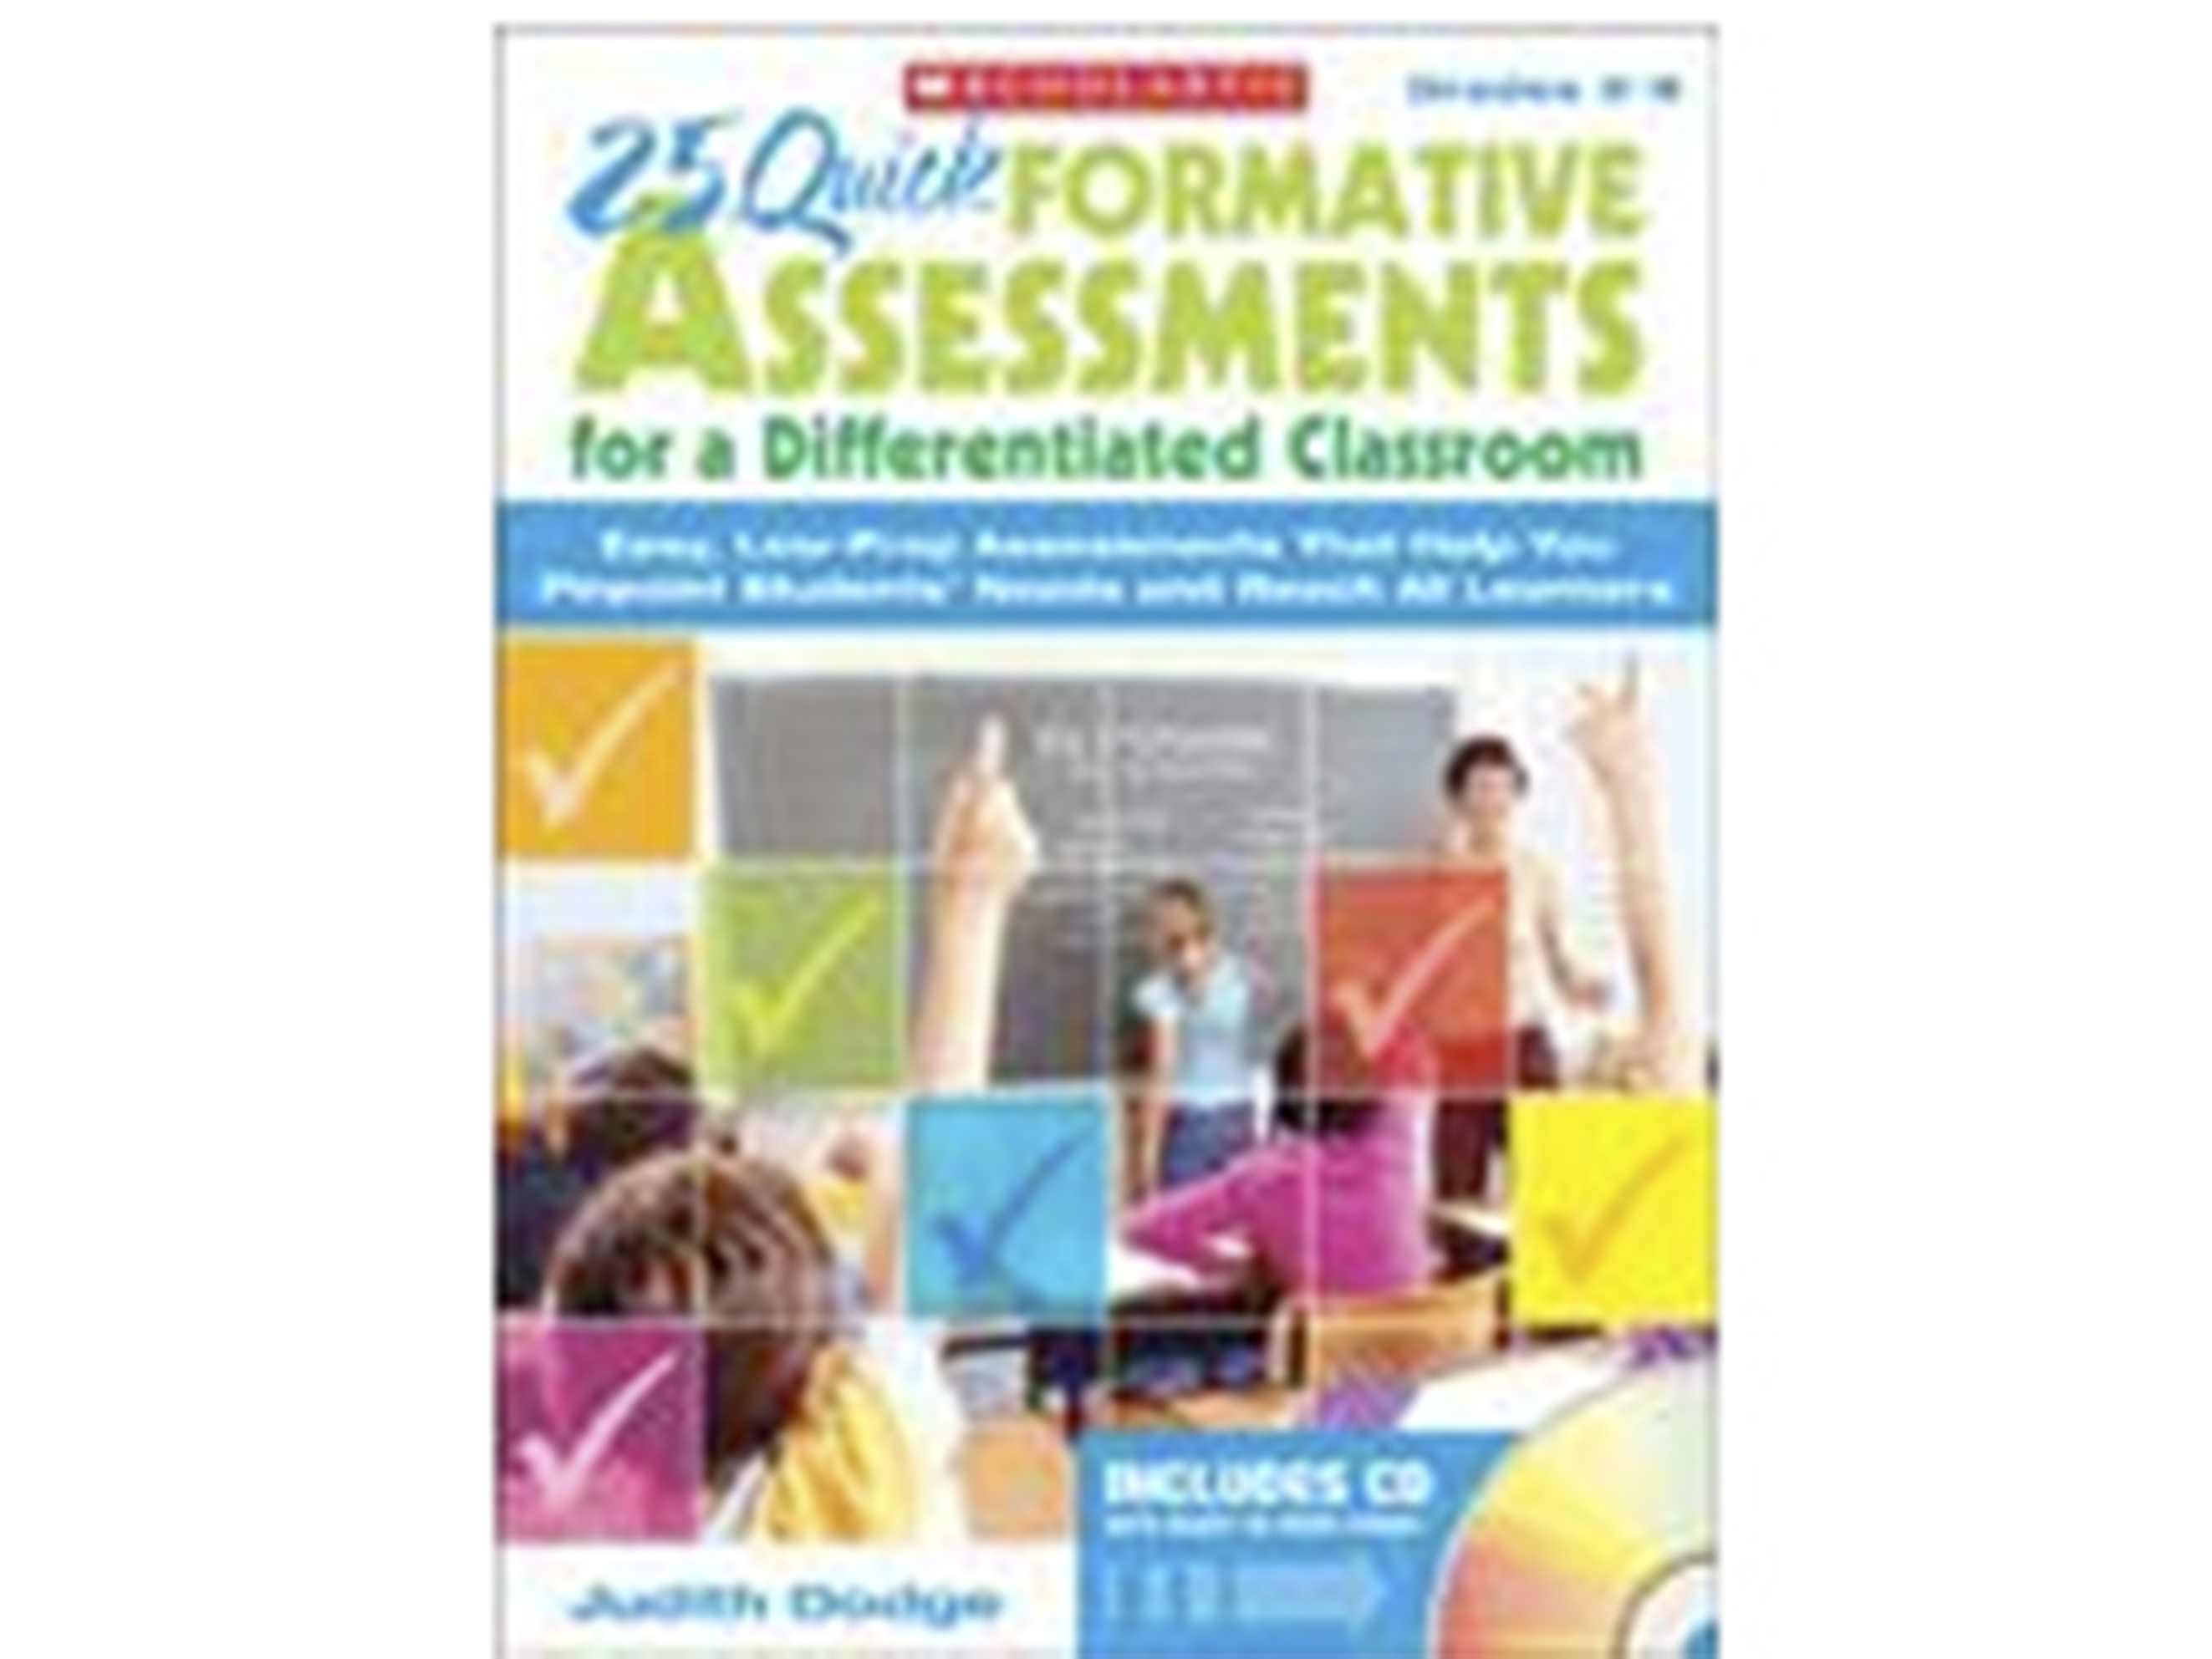 What Are Formative Assessments And Why Should We Use Them